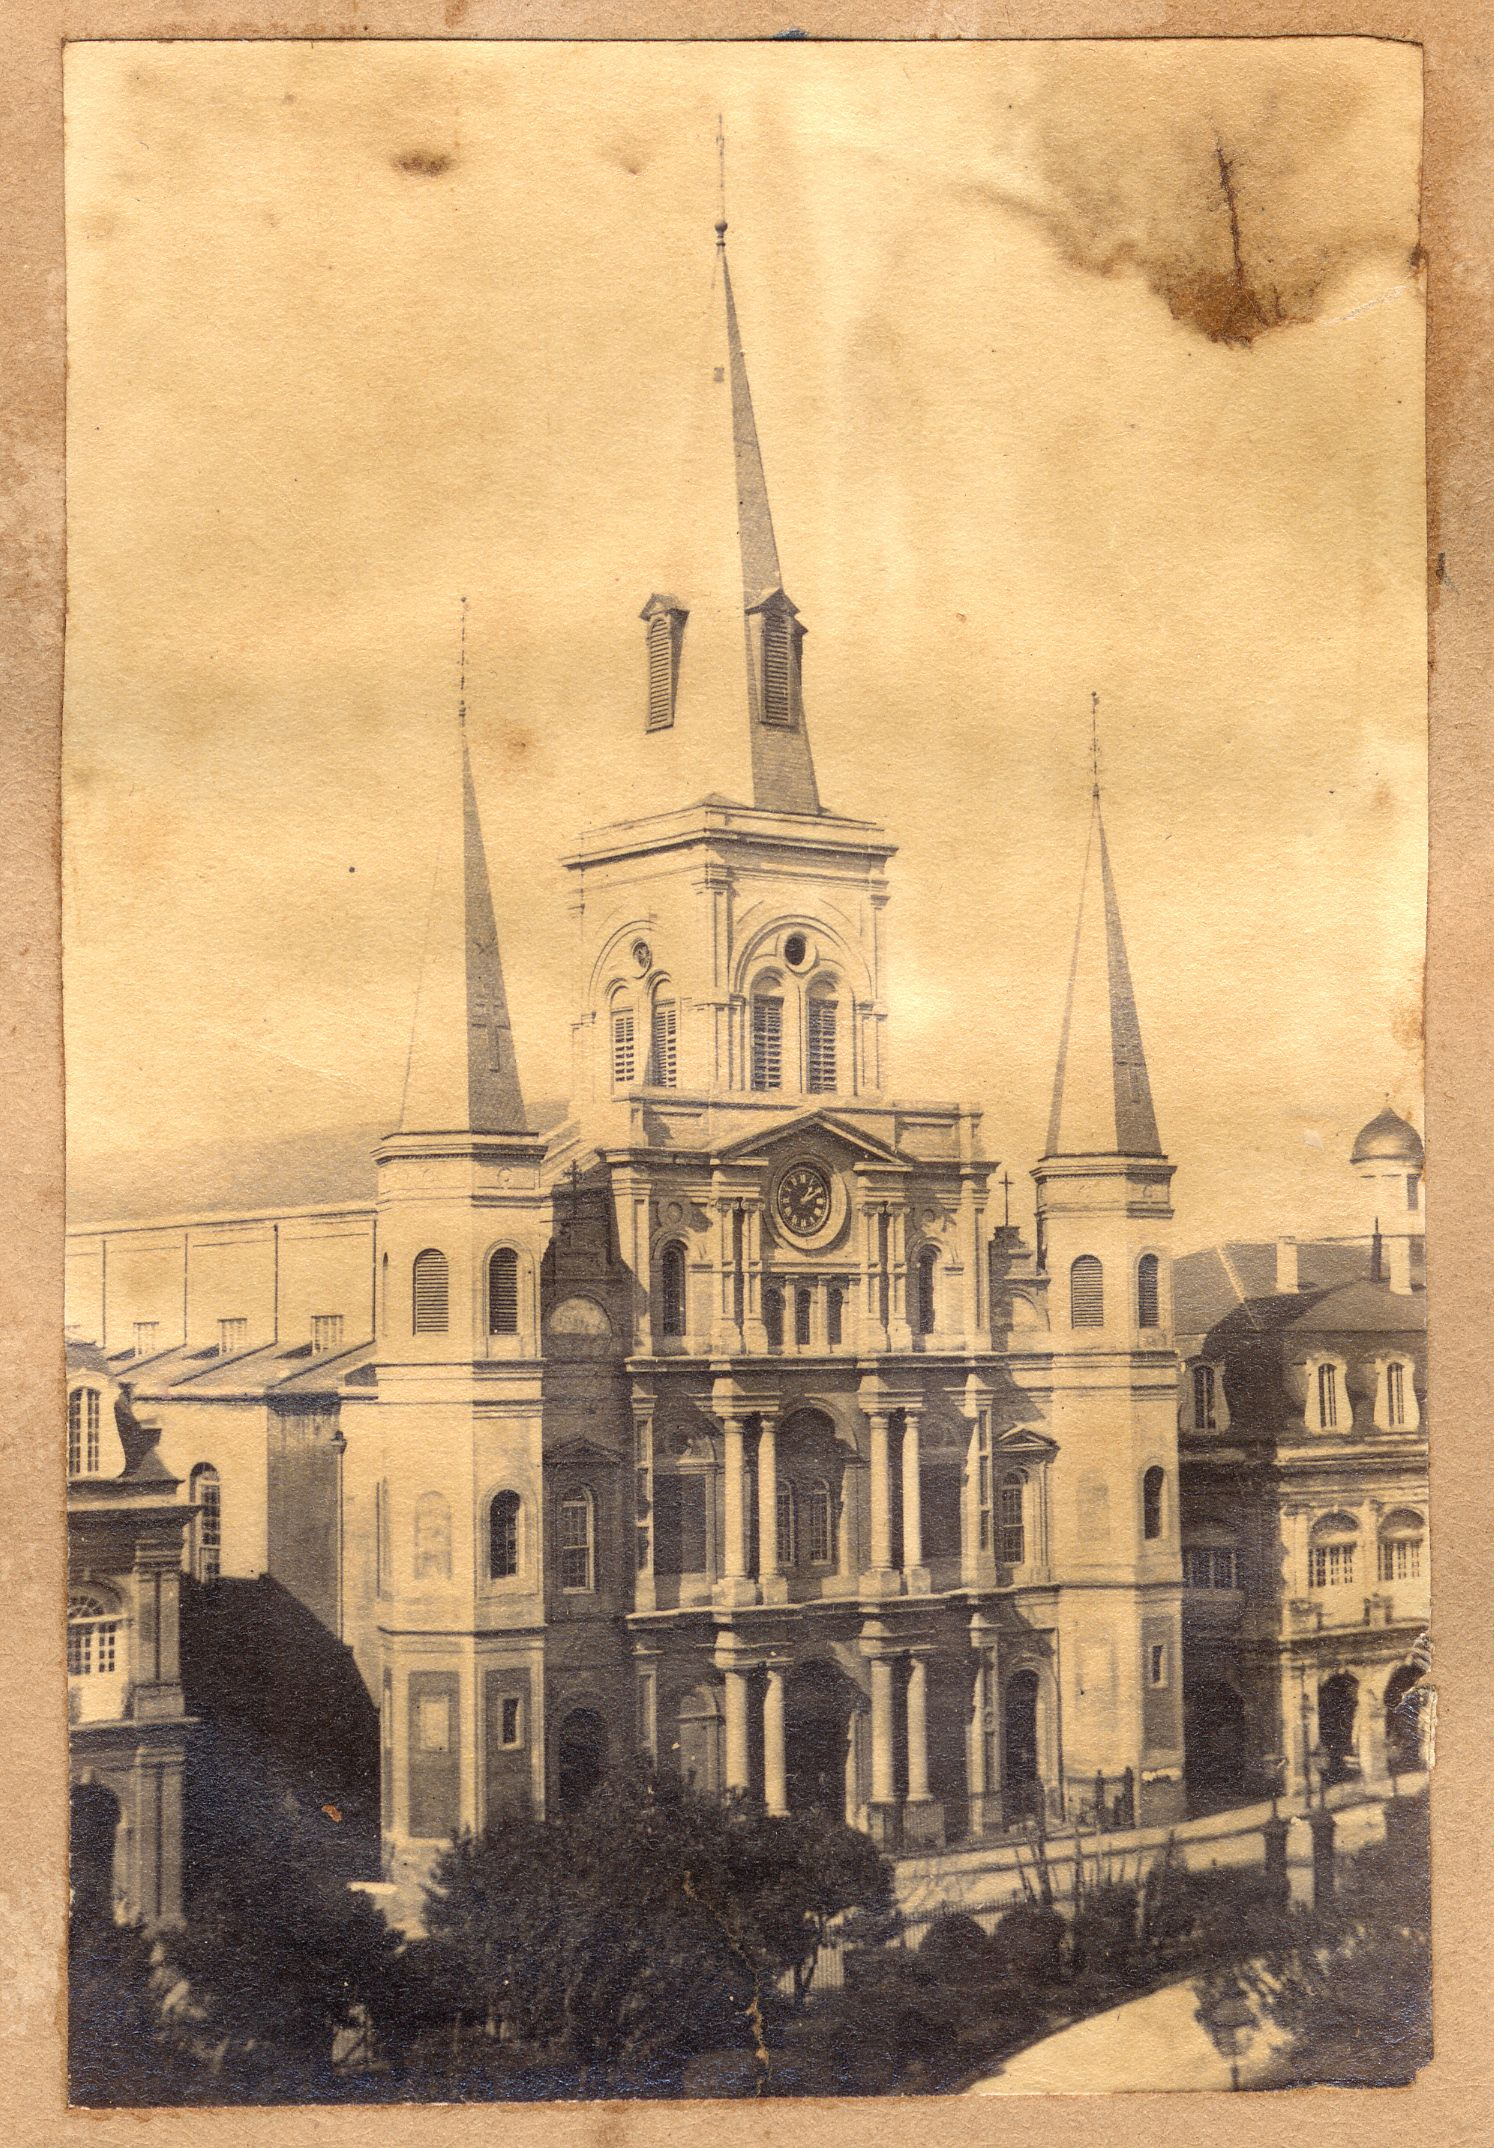 antebellum new orleans photography a pictoral history tcoo la